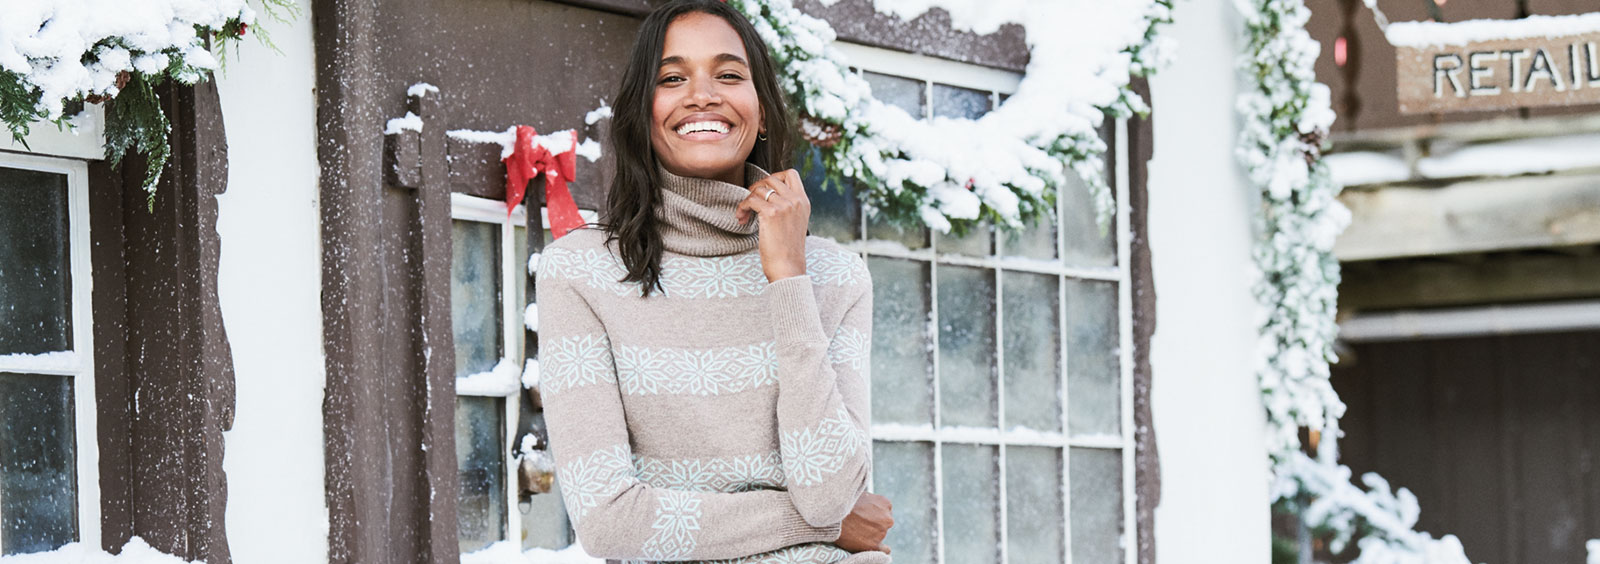 5 Reasons Why I Love Cozy Winter Sweaters